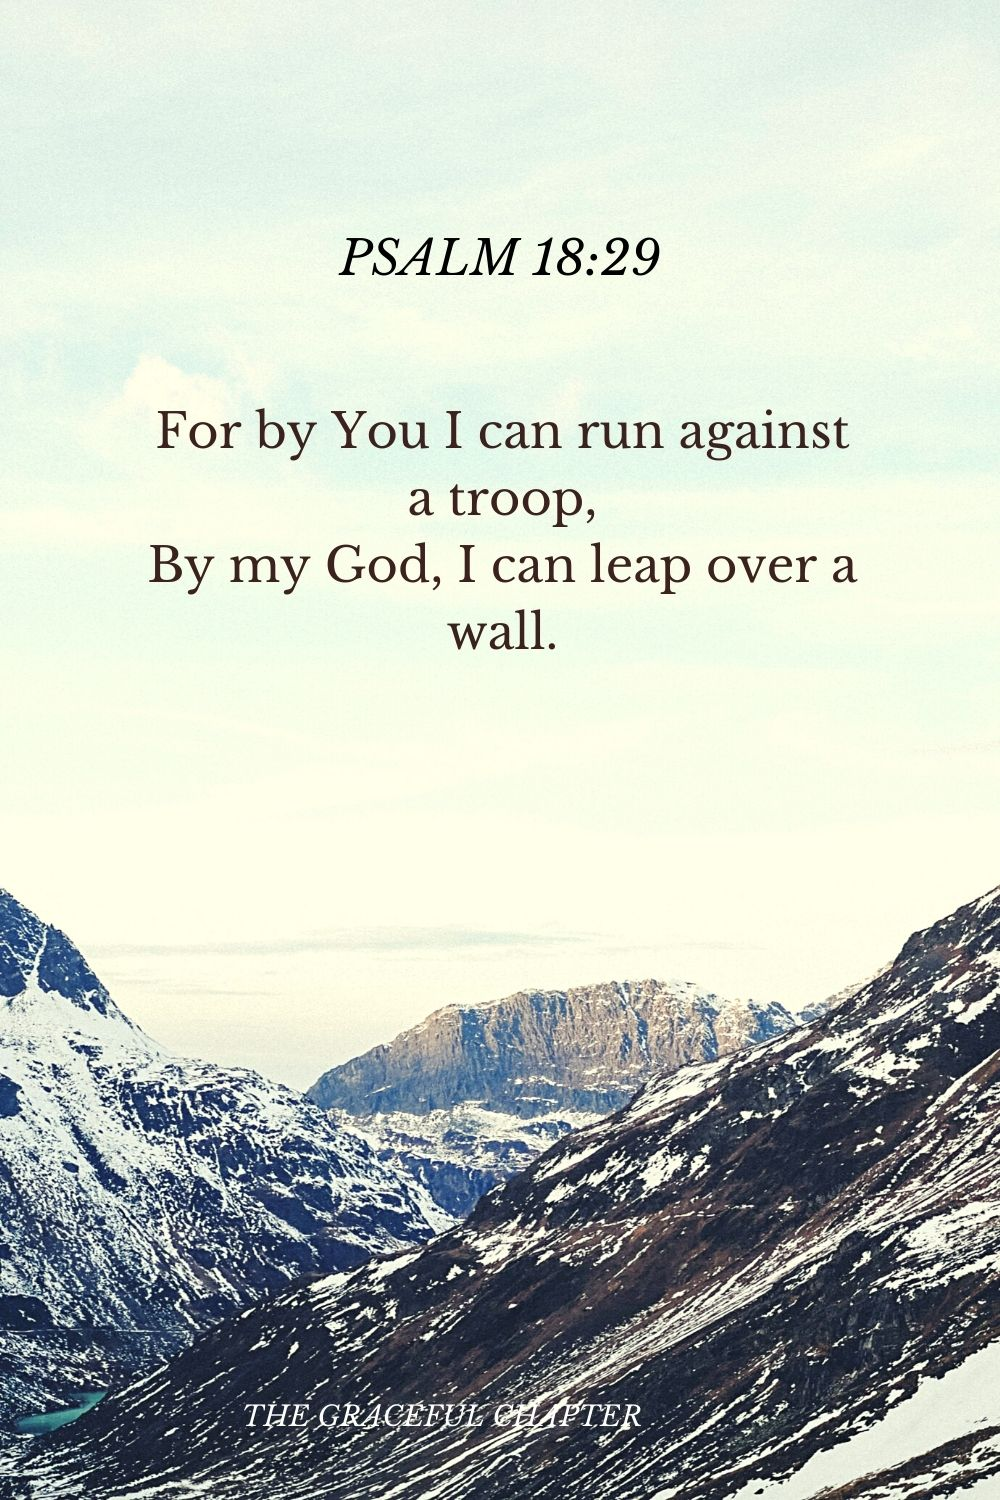 For by You I can run against a troop, By my God, I can leap over a wall. Psalm 18:29